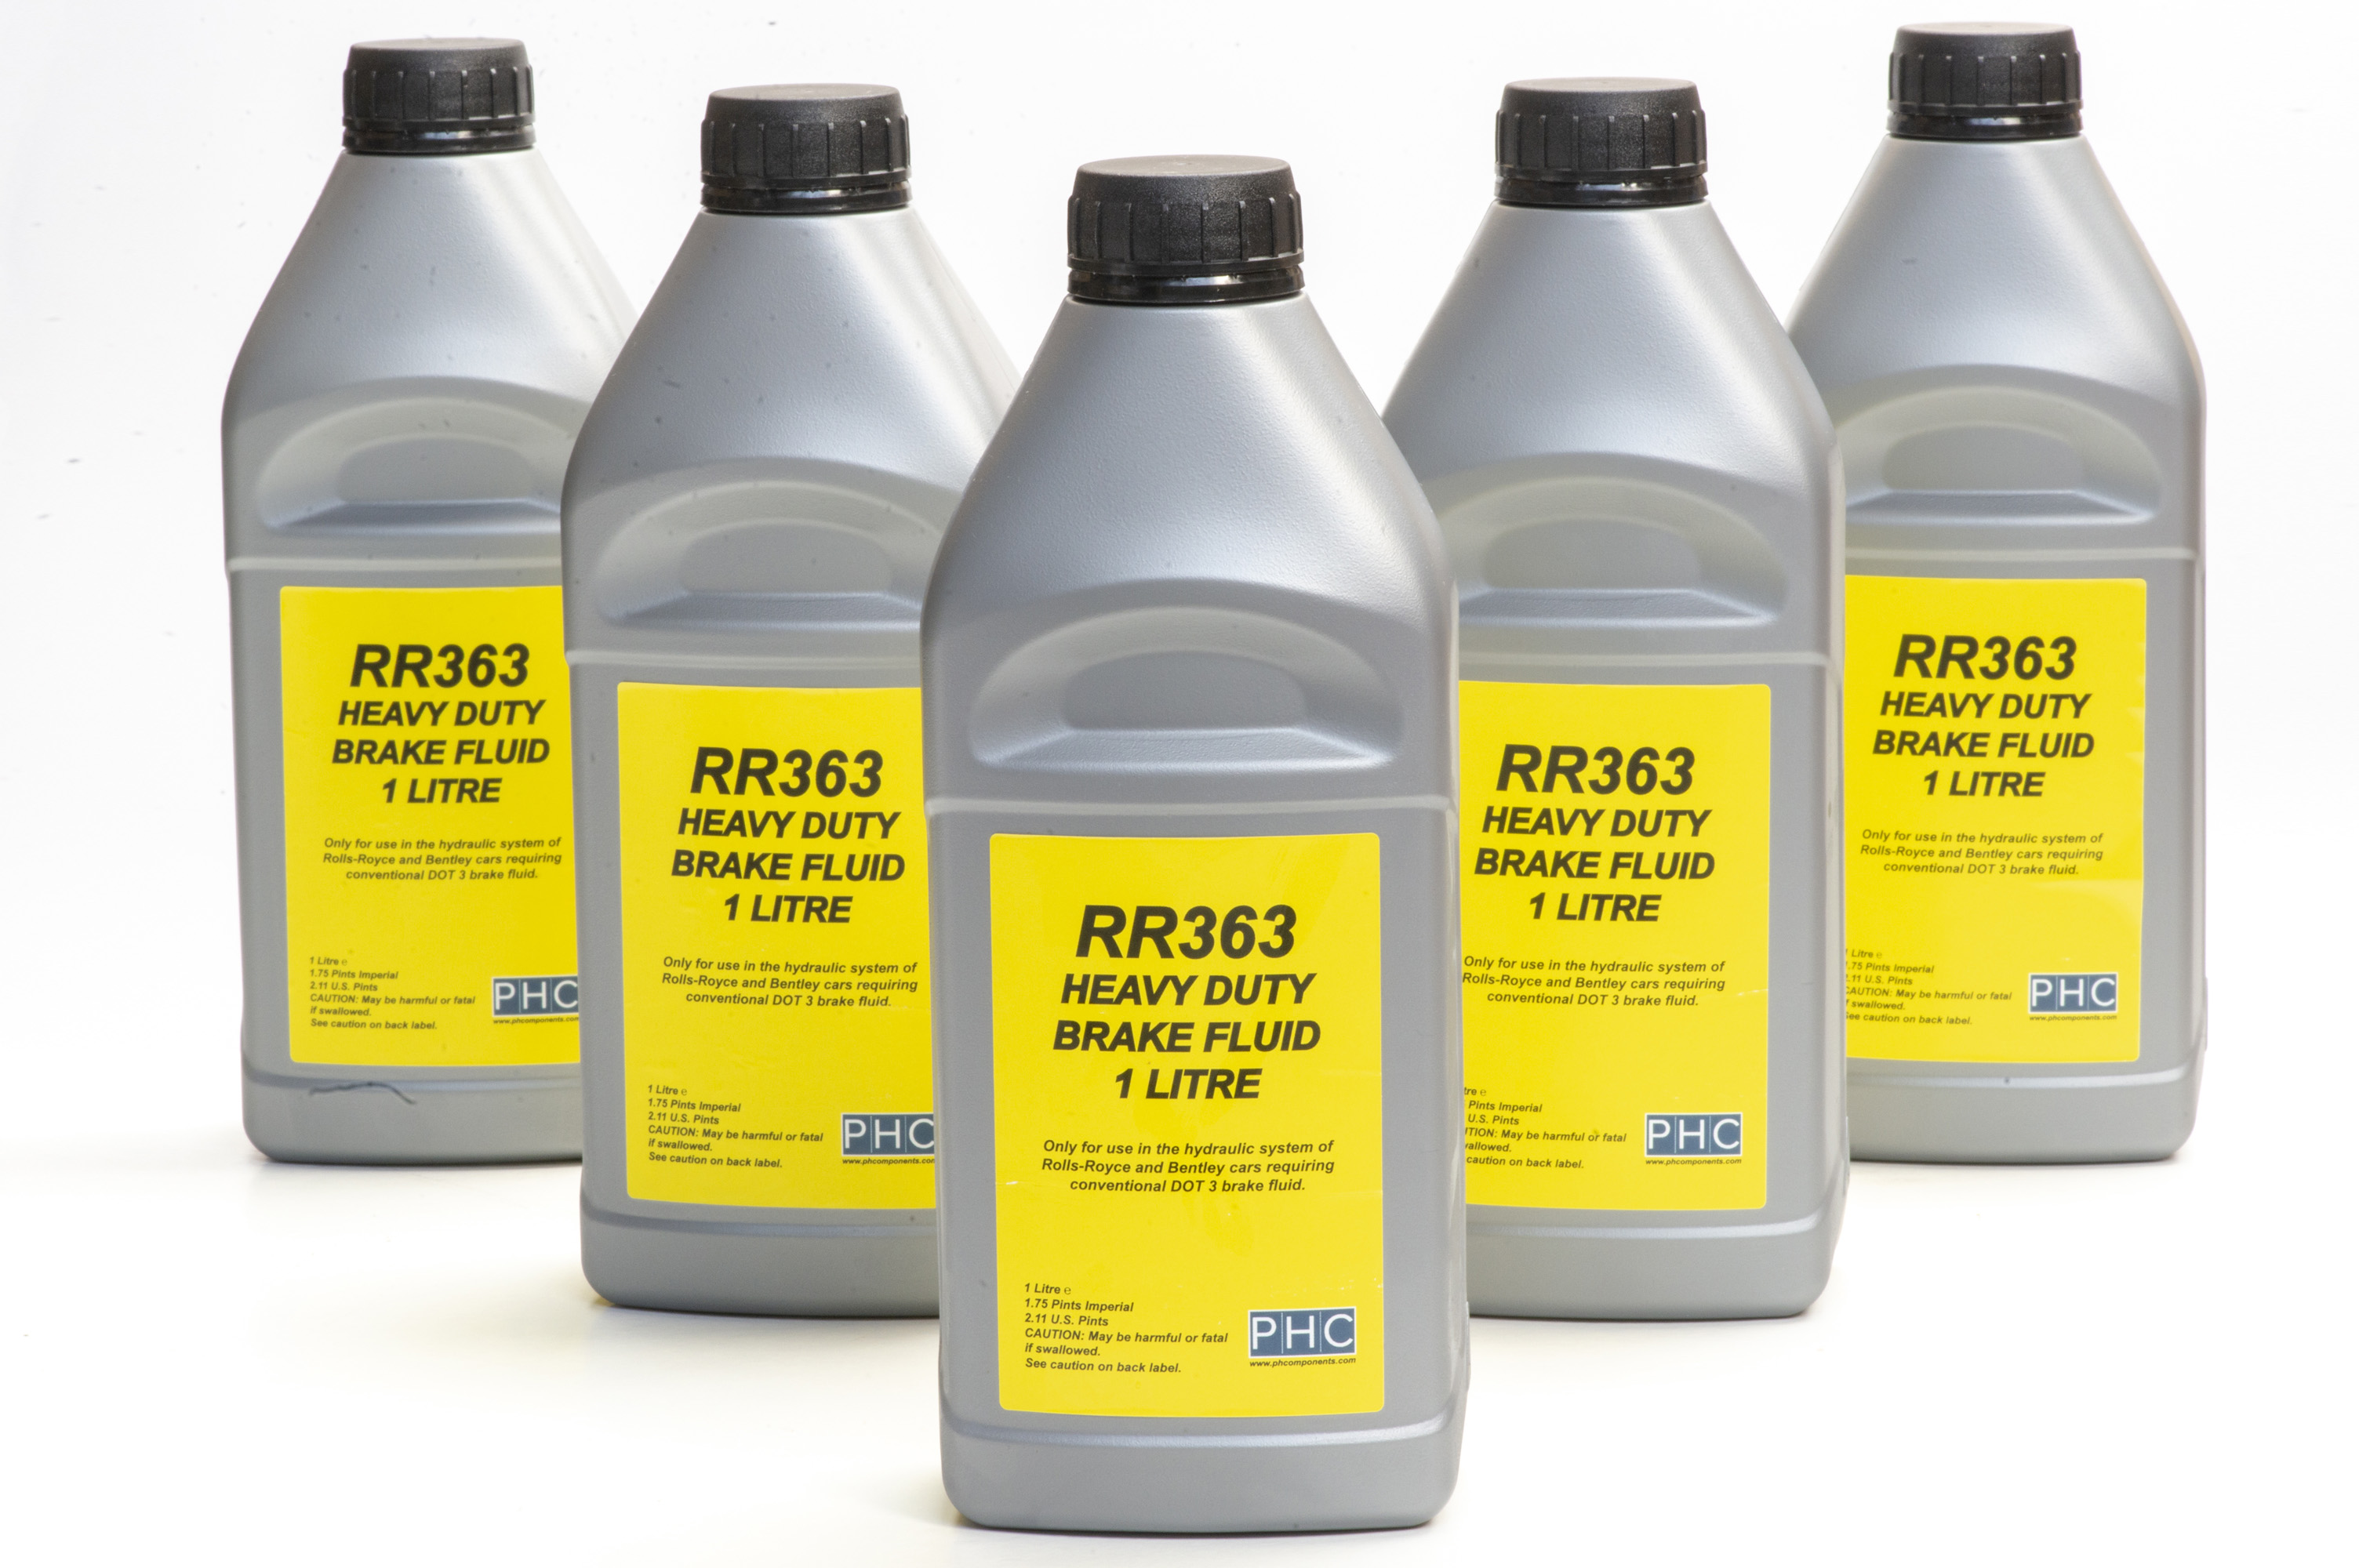 RR363 Brake Fluid - All You Need to Know